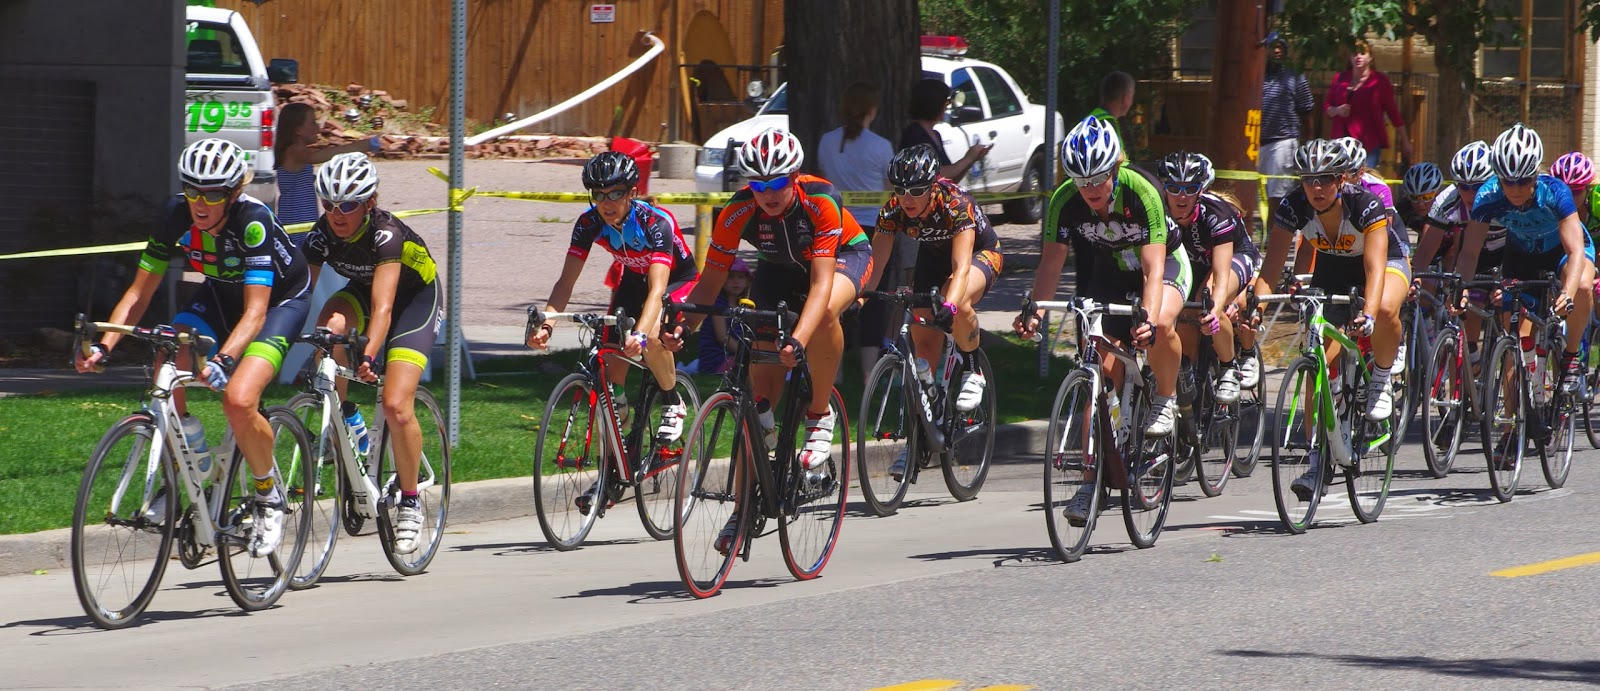 Bike Colorado 2014 Photo by Karen Rakestraw of